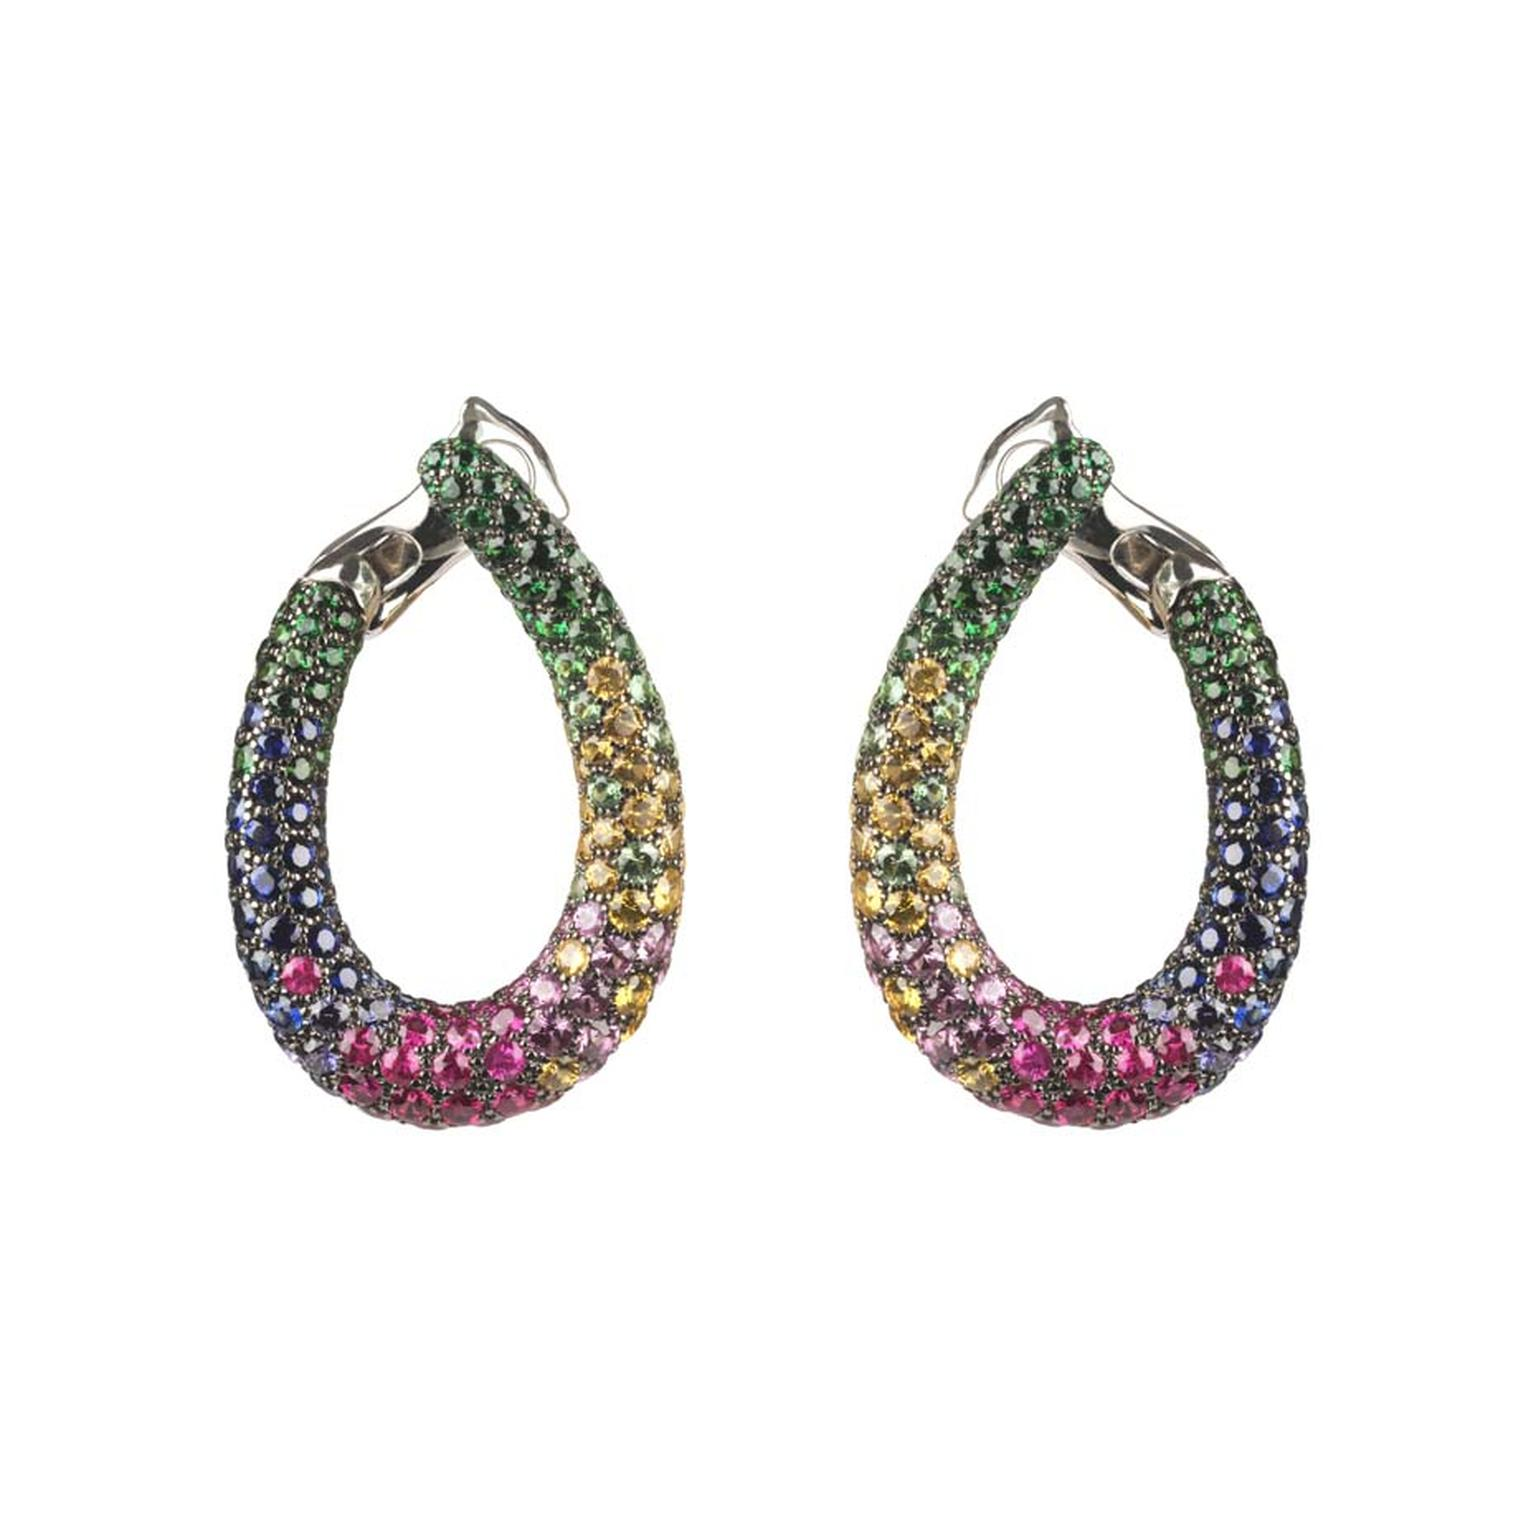 Boucheron Chameleon hoop earrings set with pavé round tsavorites, pink, blue, orange, yellow and purple sapphires, in blackened white gold.